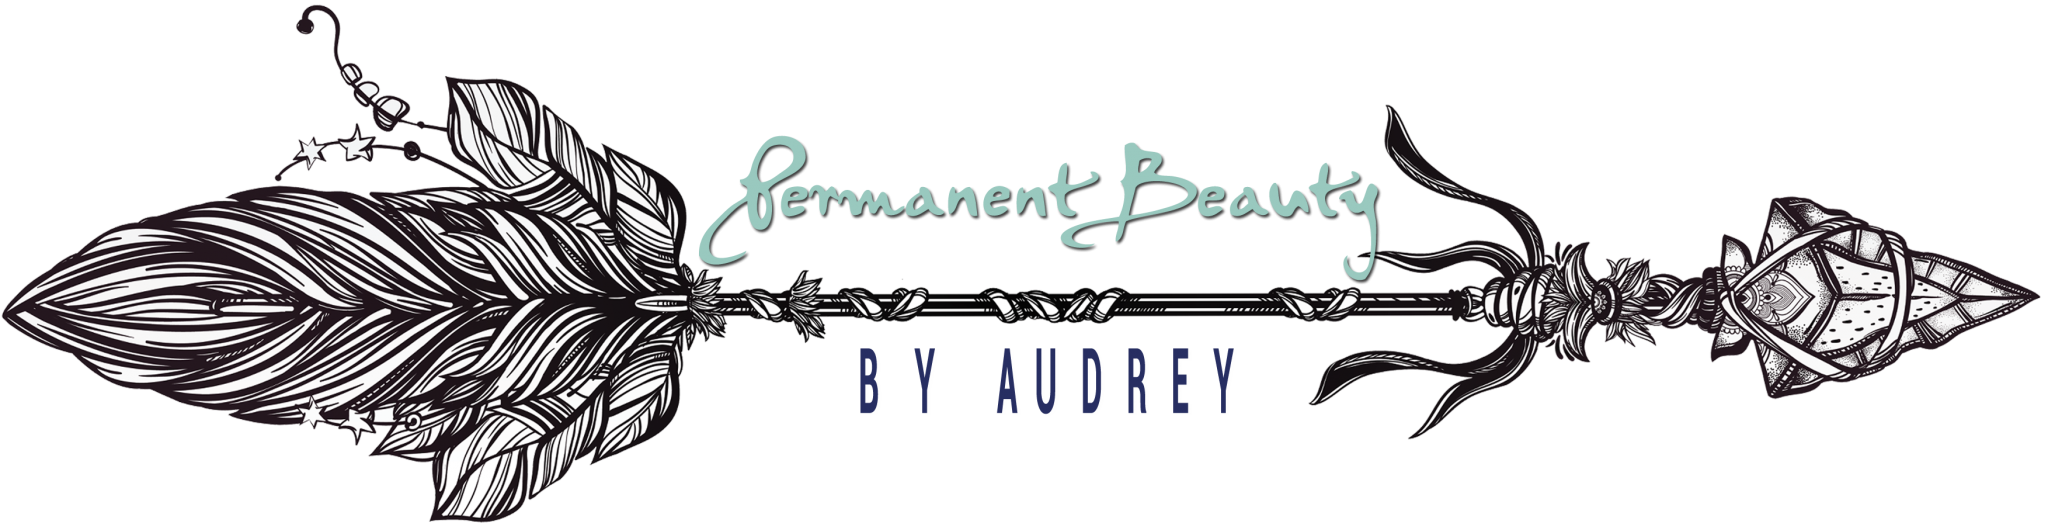 Permanent Beauty WNY